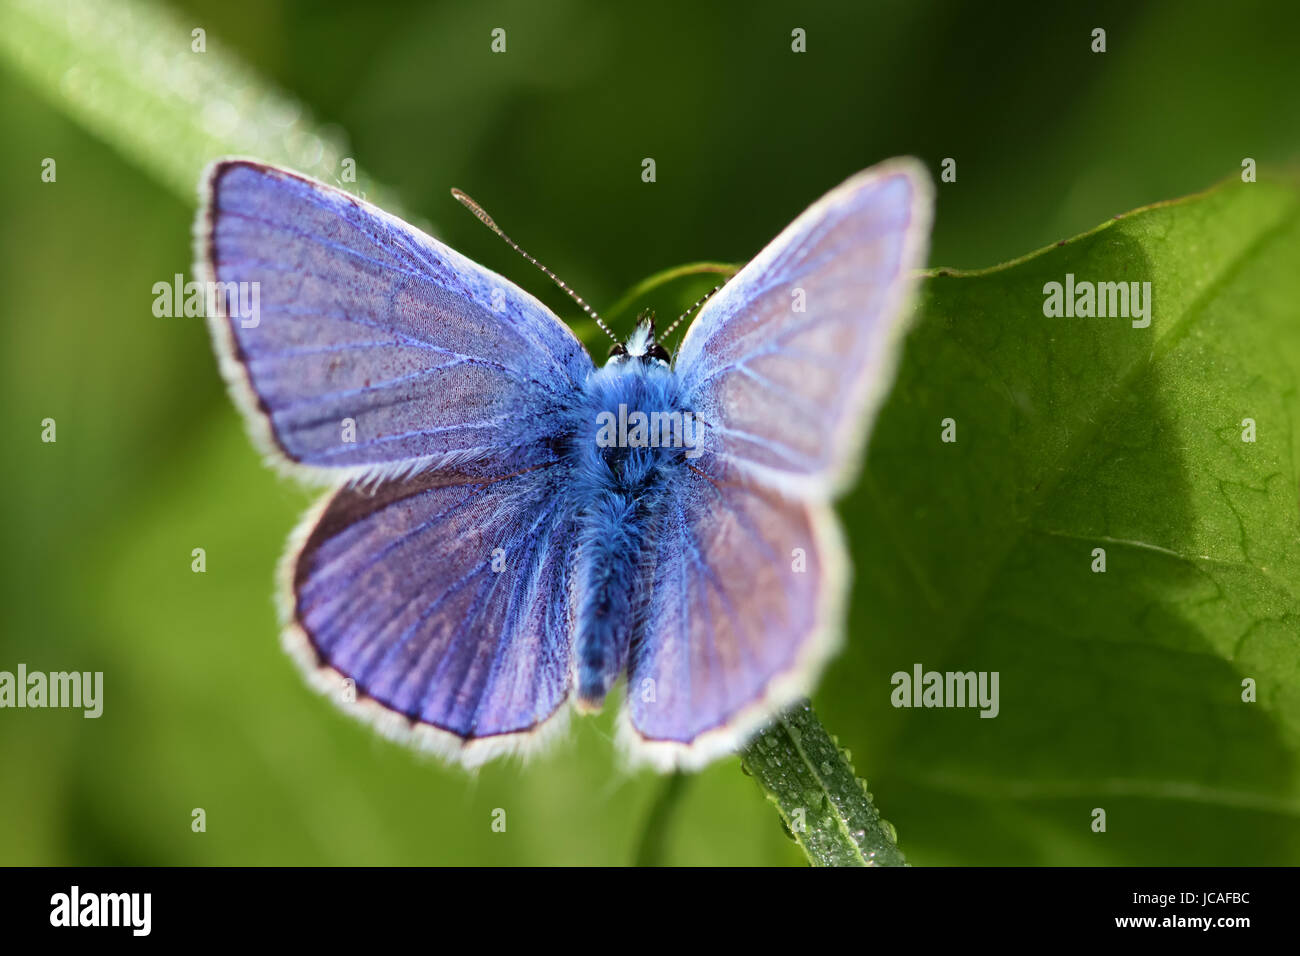 Close-up of a fluffy blue butterfly on green leaves. - Stock Image